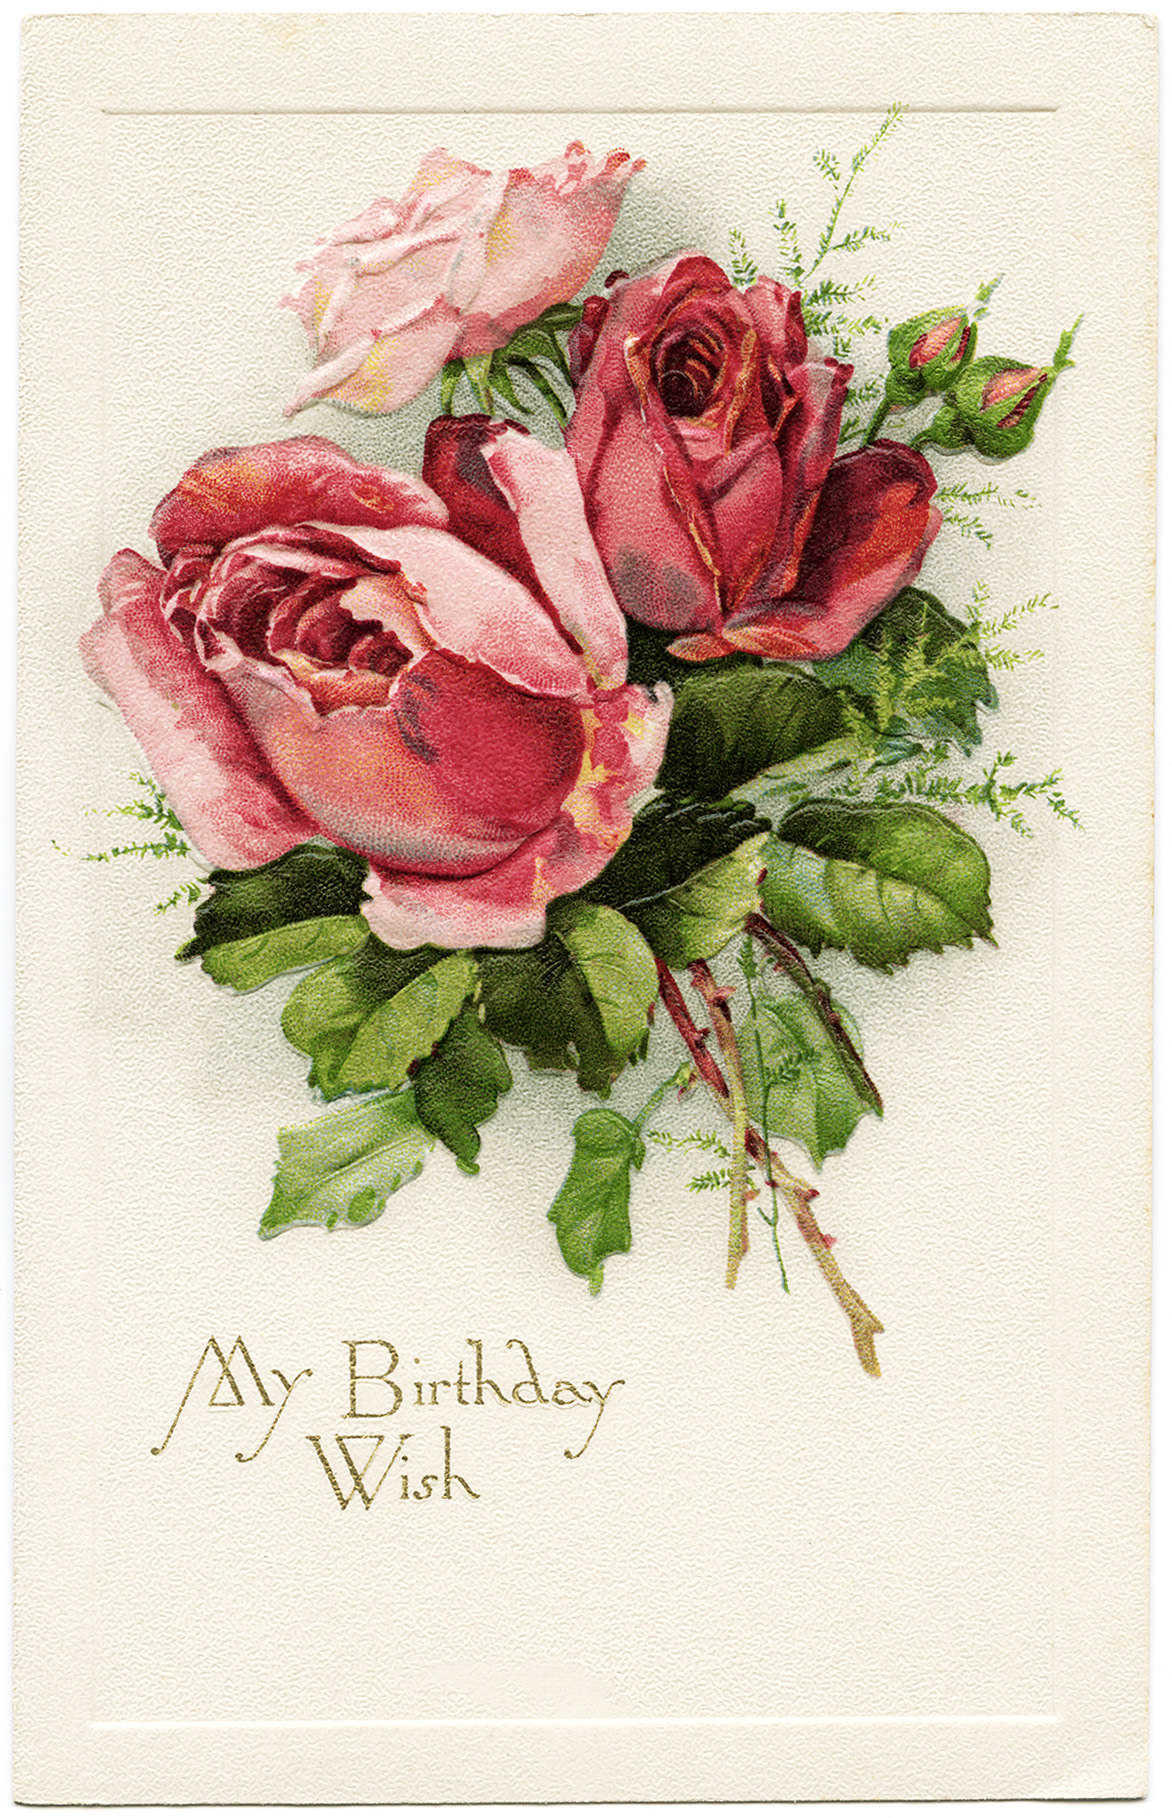 Free Vintage Image My Birthday Wish Roses Postcard   Old Design Shop